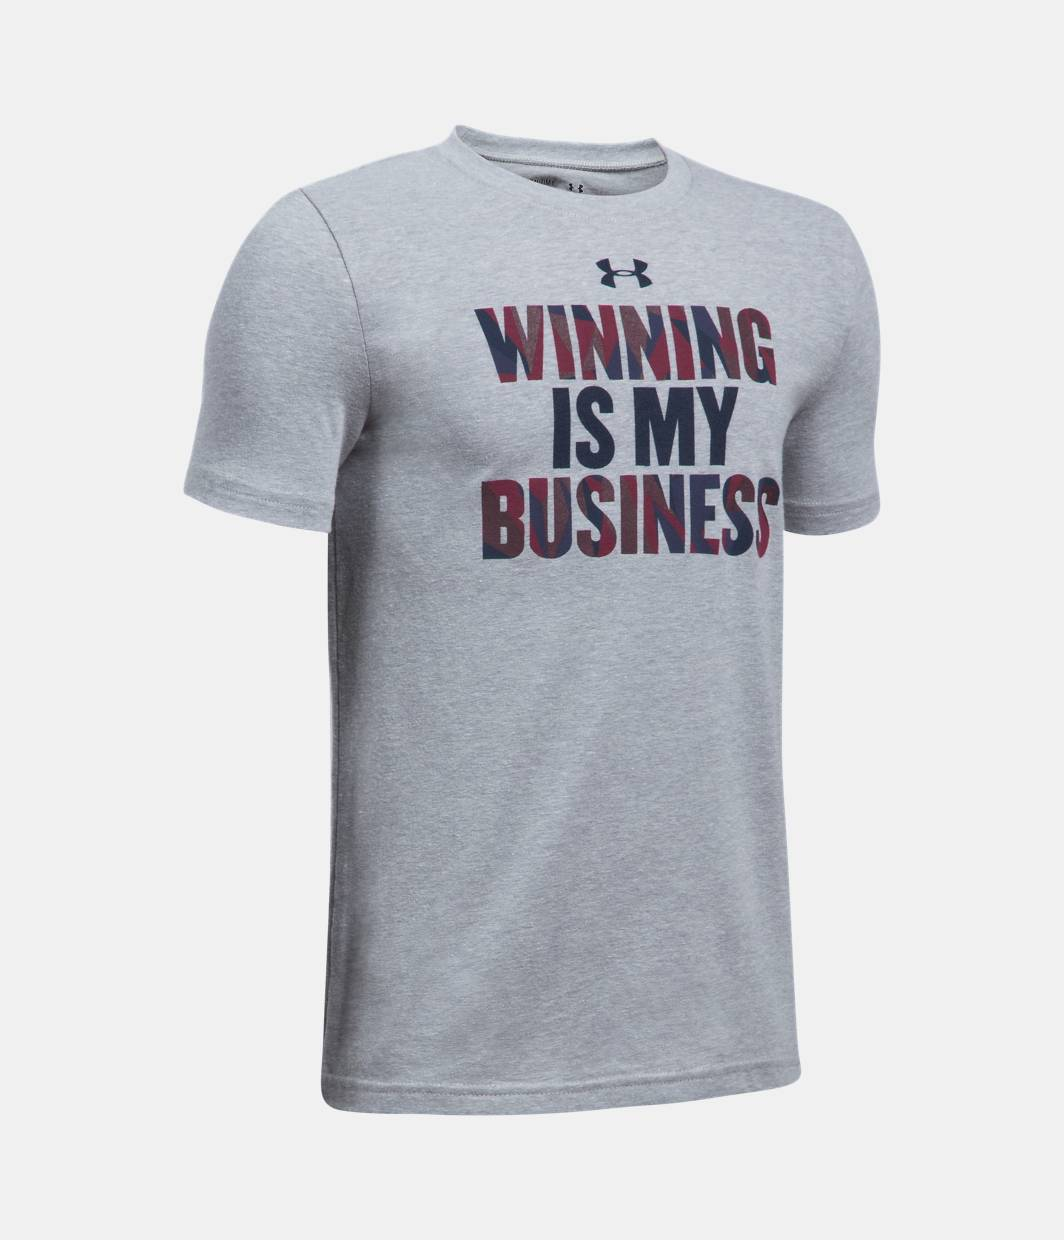 Boys 39 ua winning business t shirt under armour us for Under armor business shirts